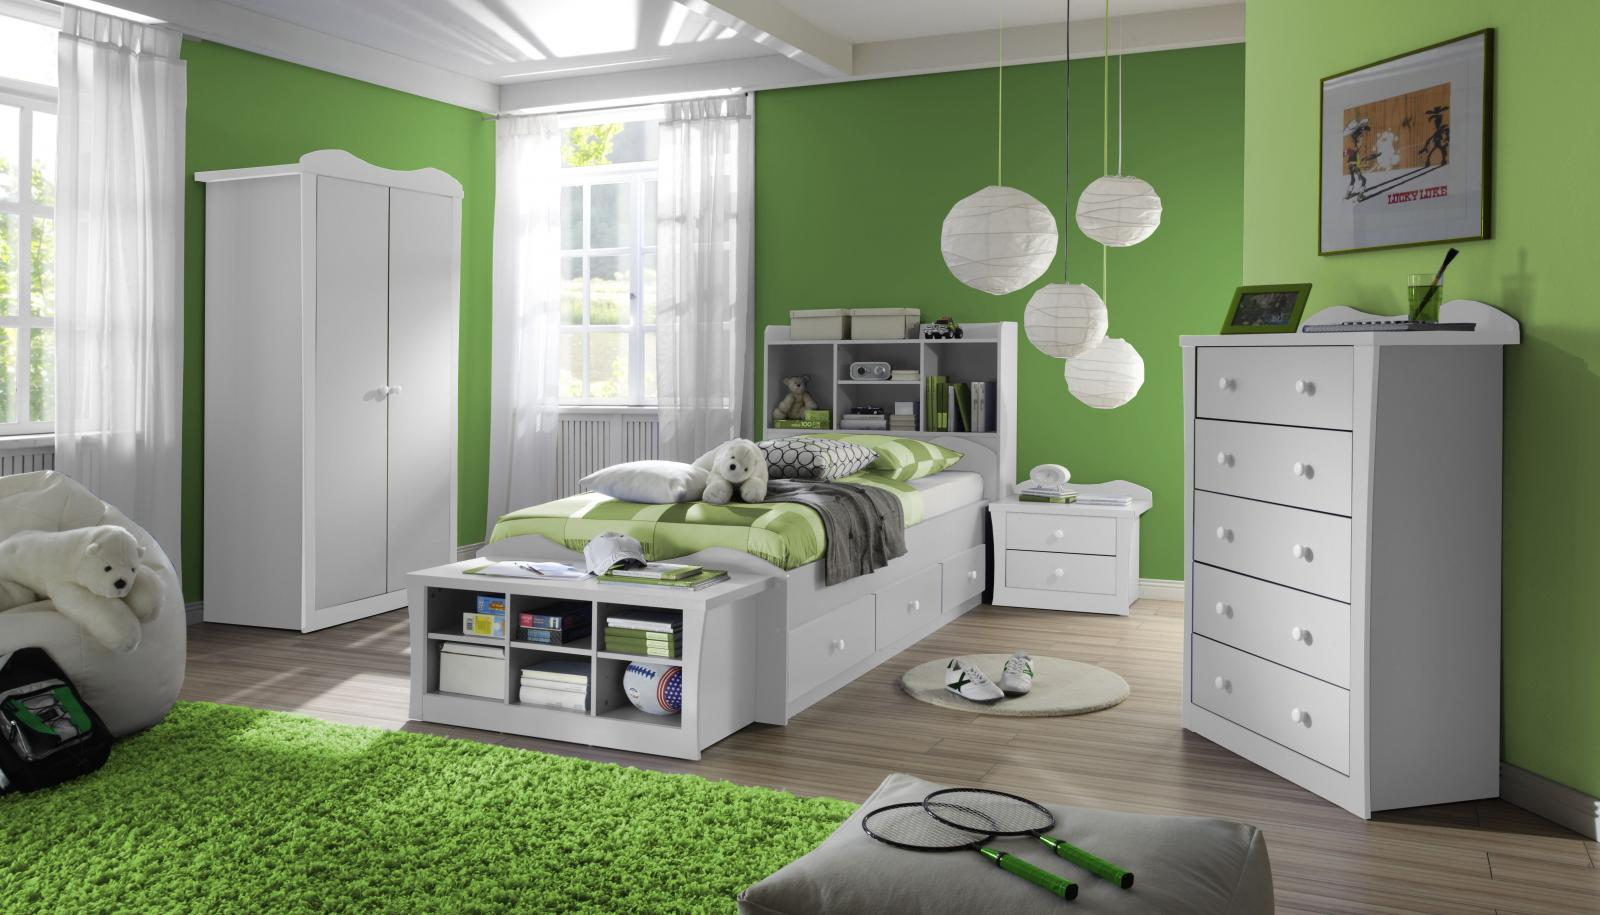 Dormitorio para ni os color verde ideas para decorar for Dormitorios verde agua